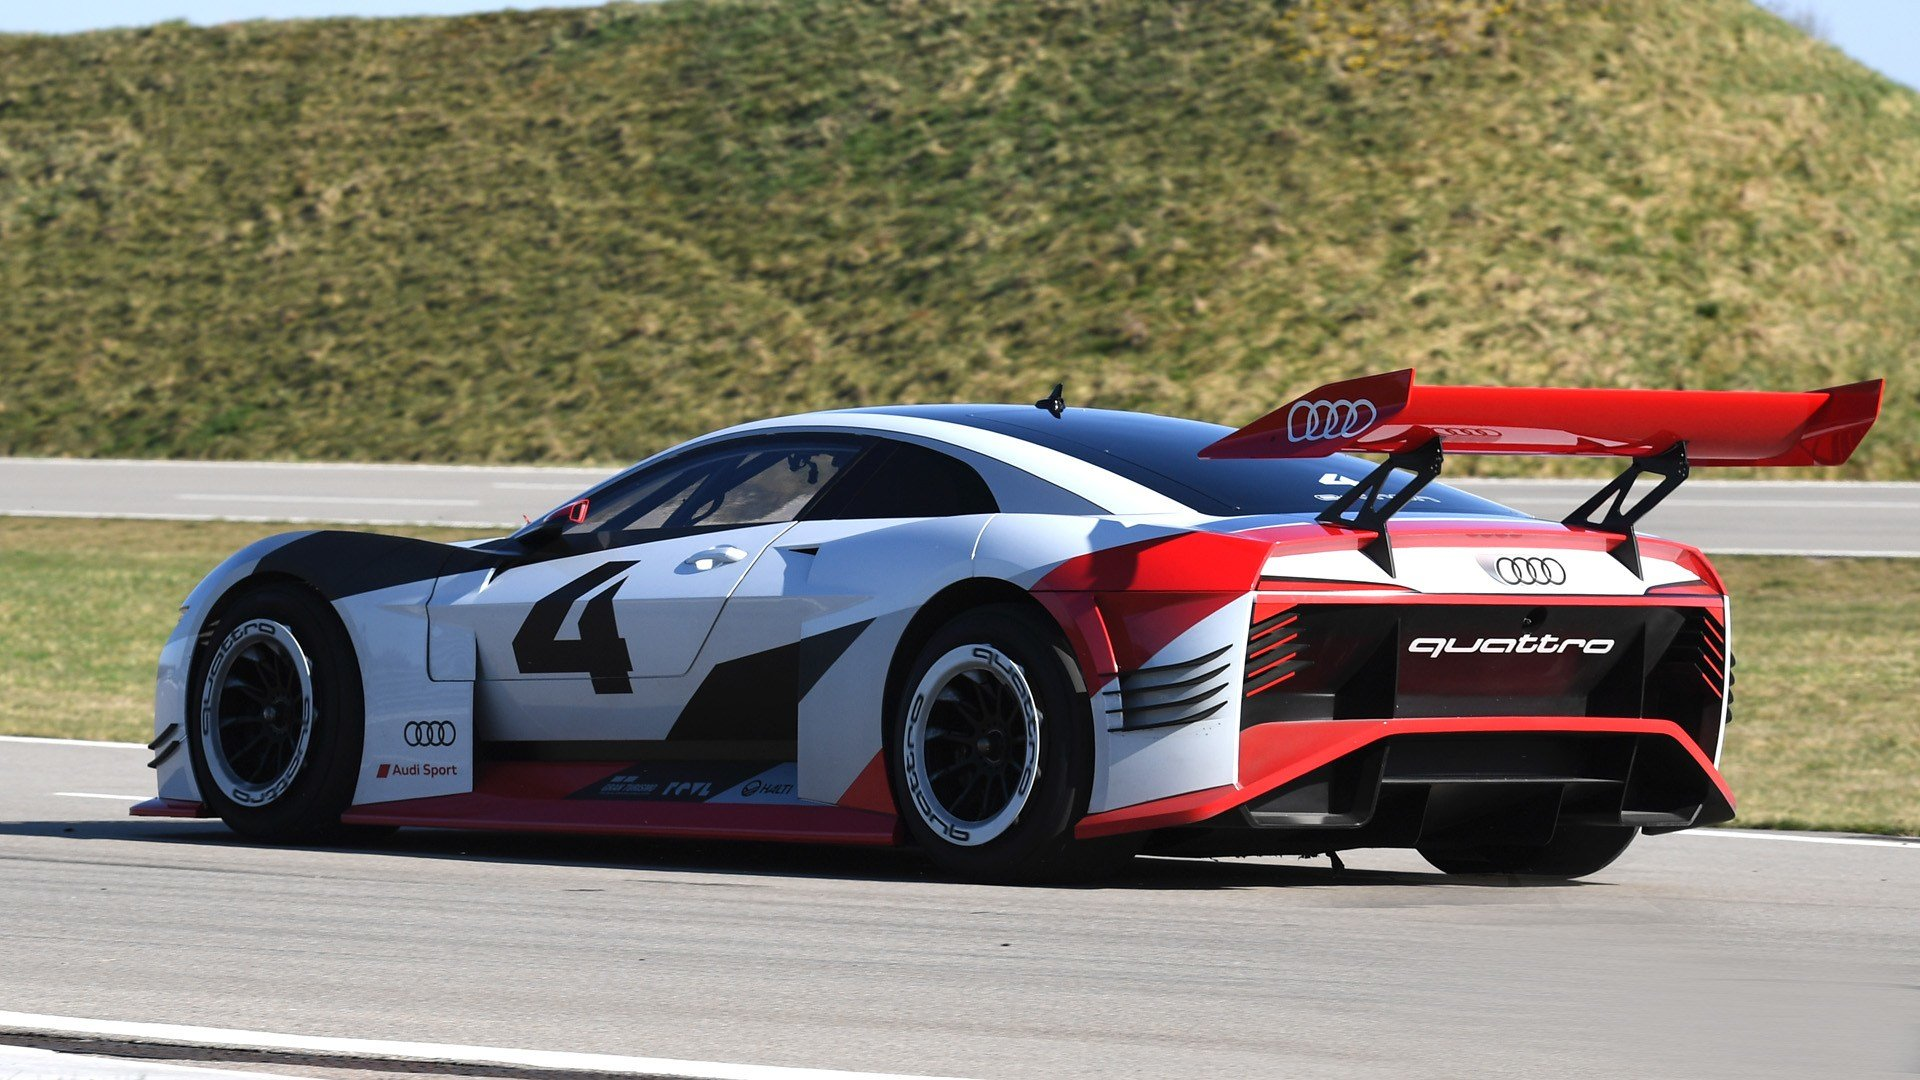 Latest Audi Introduces Two New Vision Gran Turismo Cars Free Download